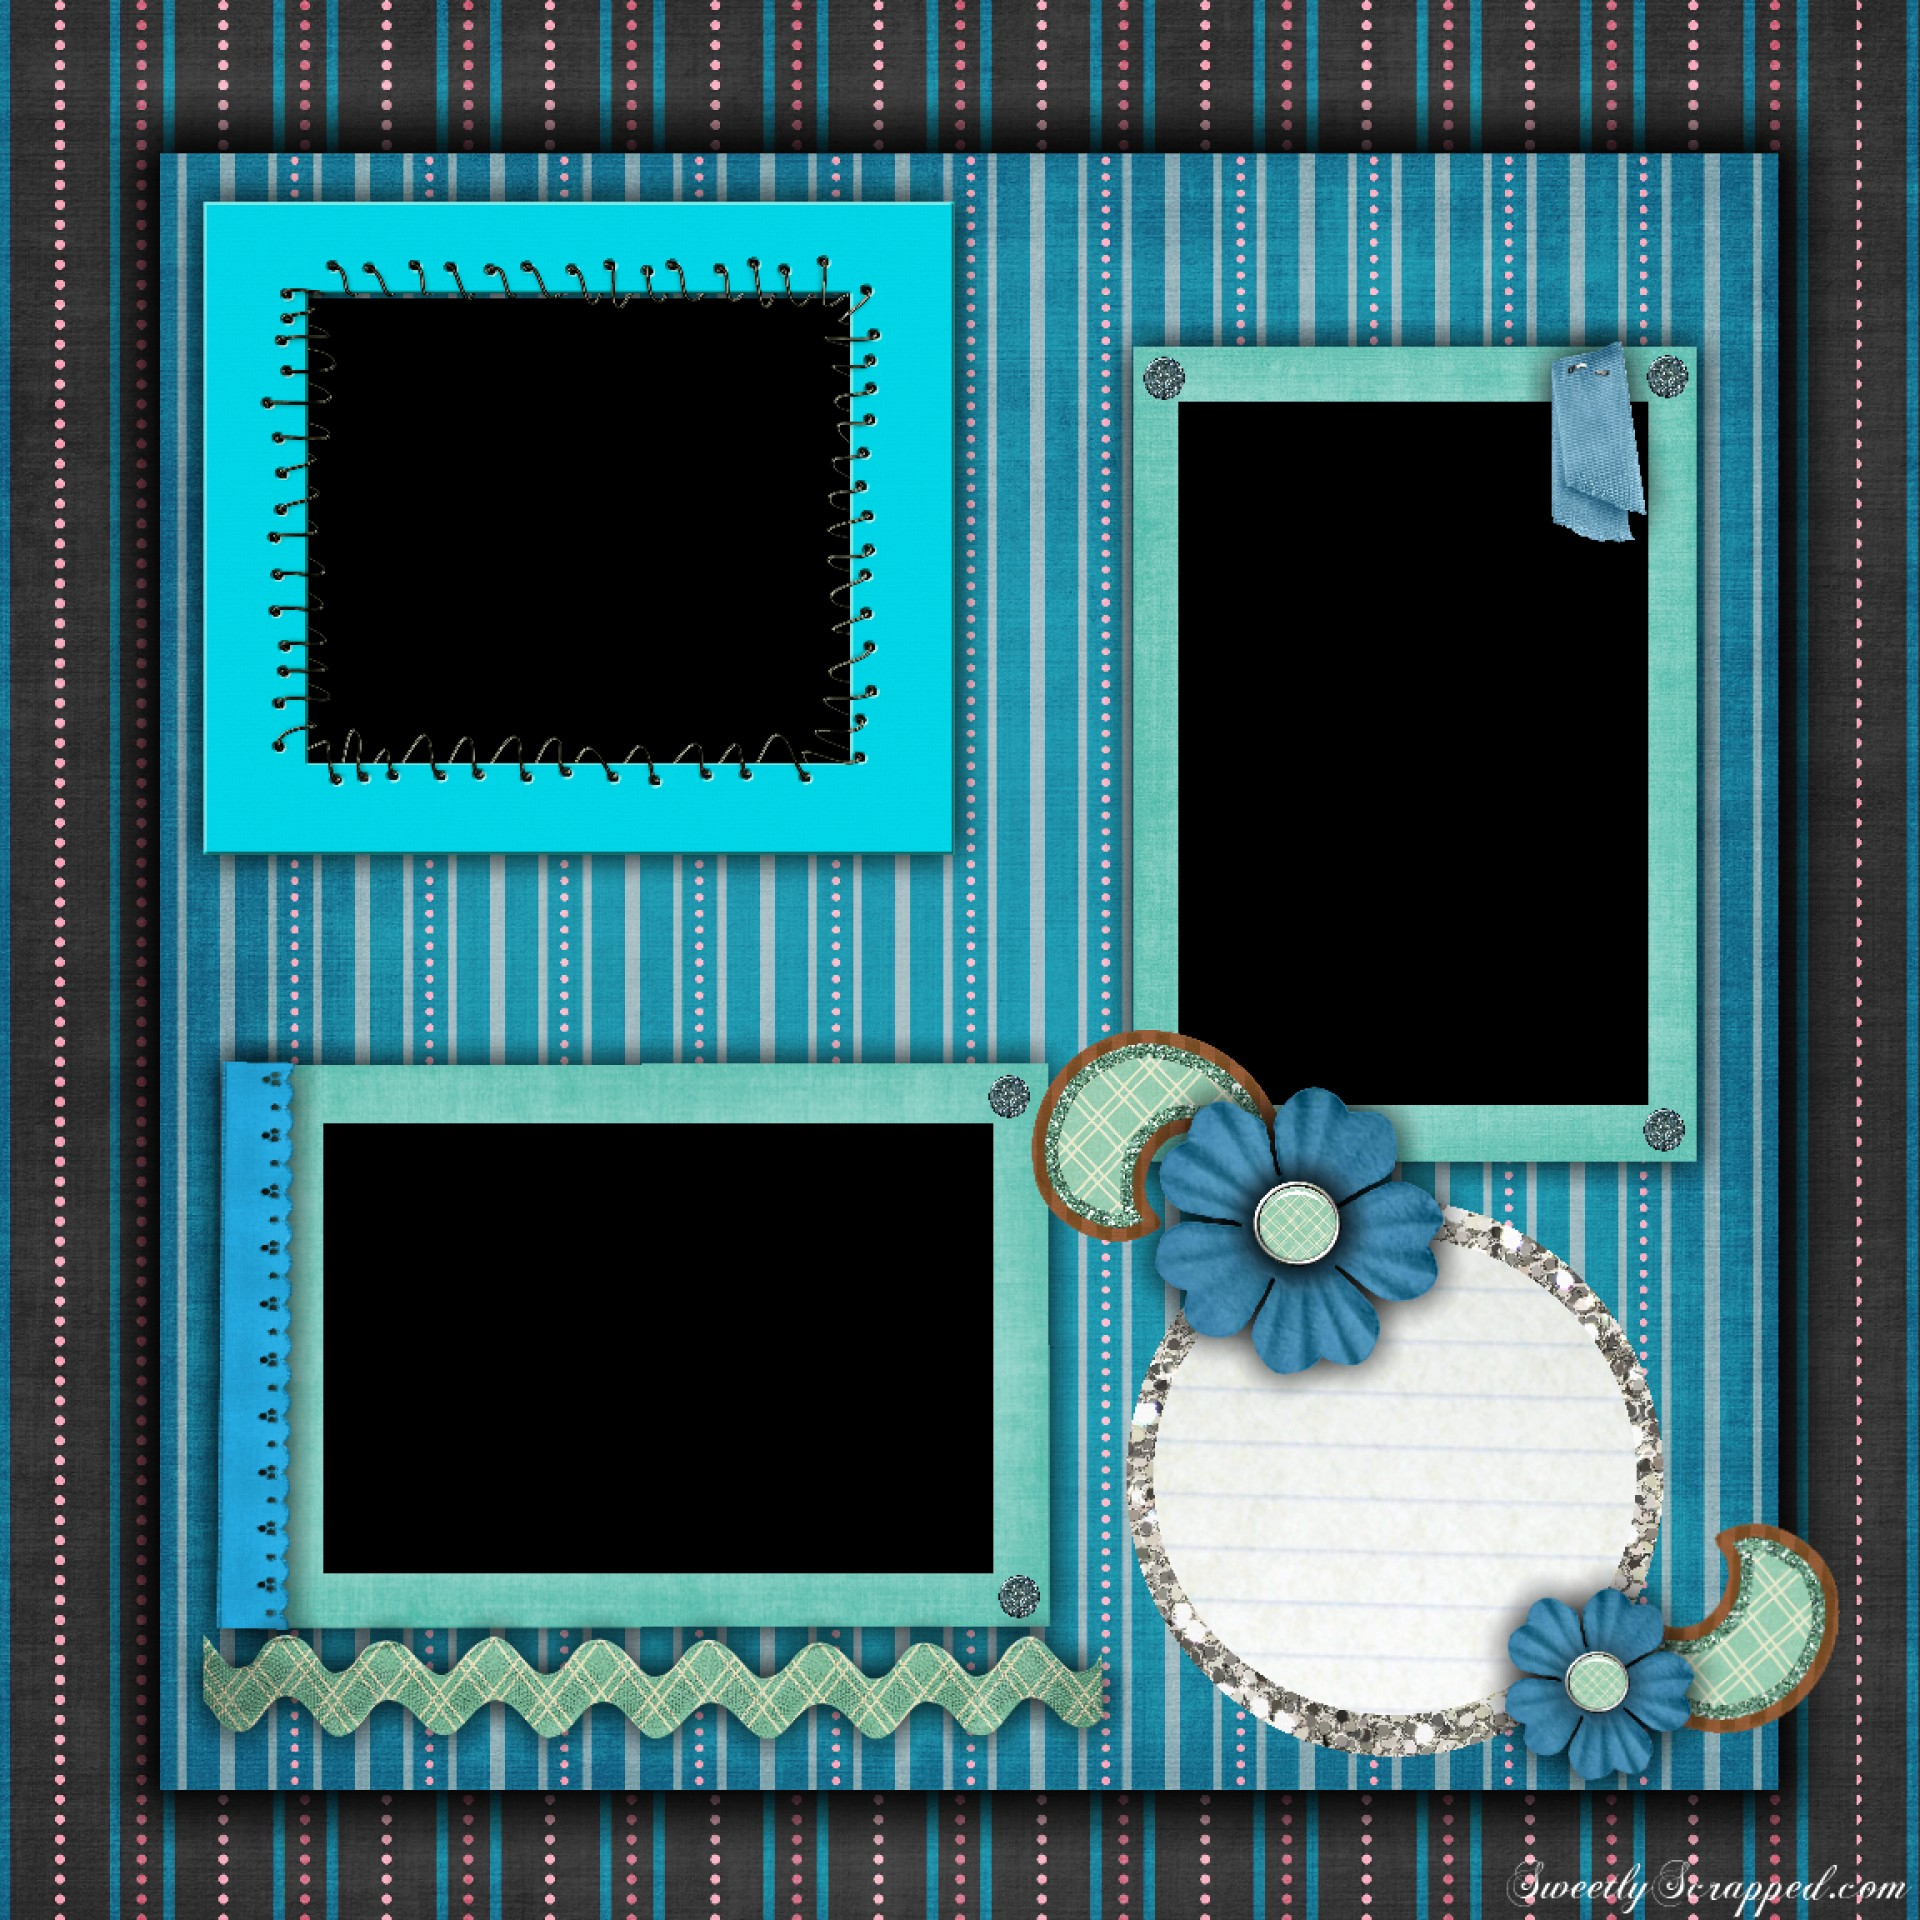 001 Free Printable Scrapbook Templates Template ~ Ulyssesroom - Free Printable Scrapbook Templates